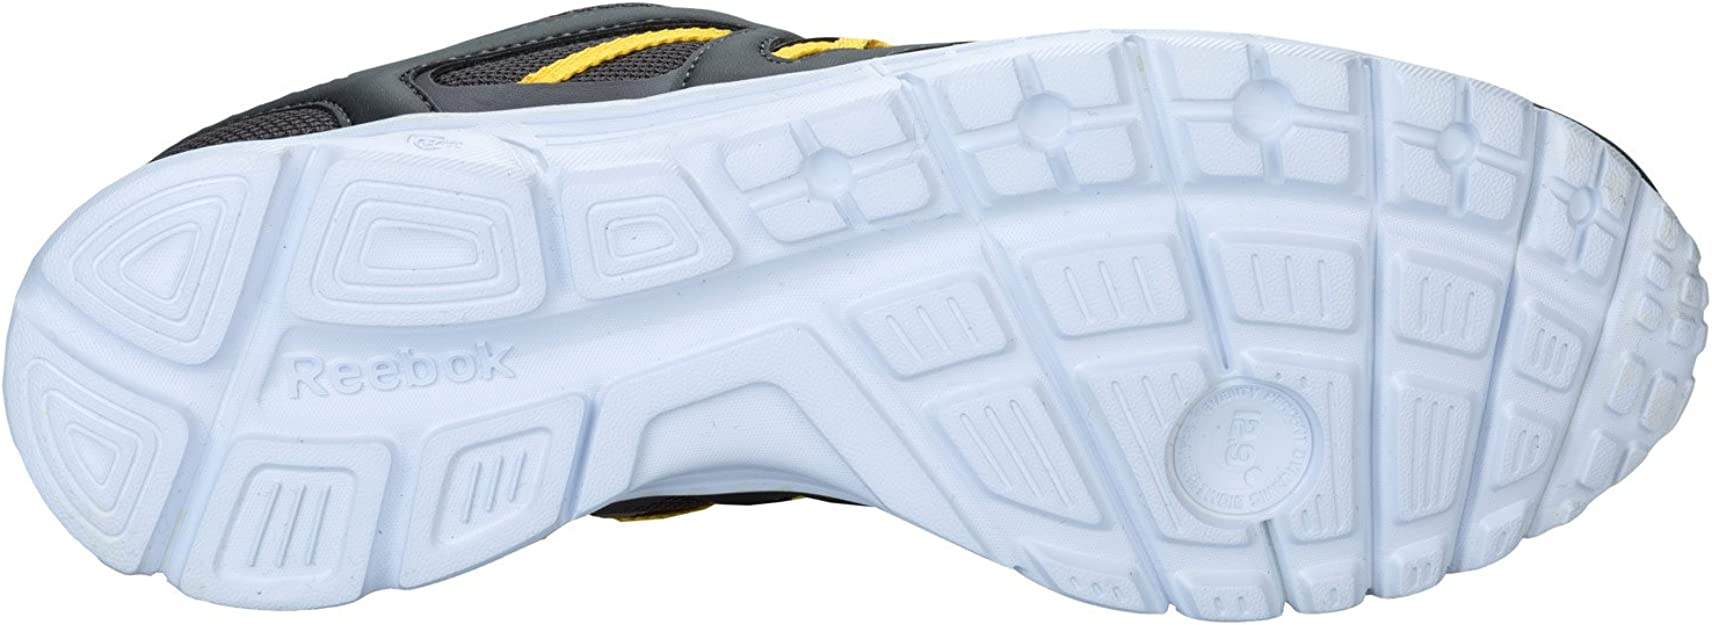 Reebok Speedlux, Zapatillas de Running para Hombre, Negro/Gris/Amarillo (Coal/Ash Grey/Yellow Spark), 38.5 EU: Amazon.es: Zapatos y complementos